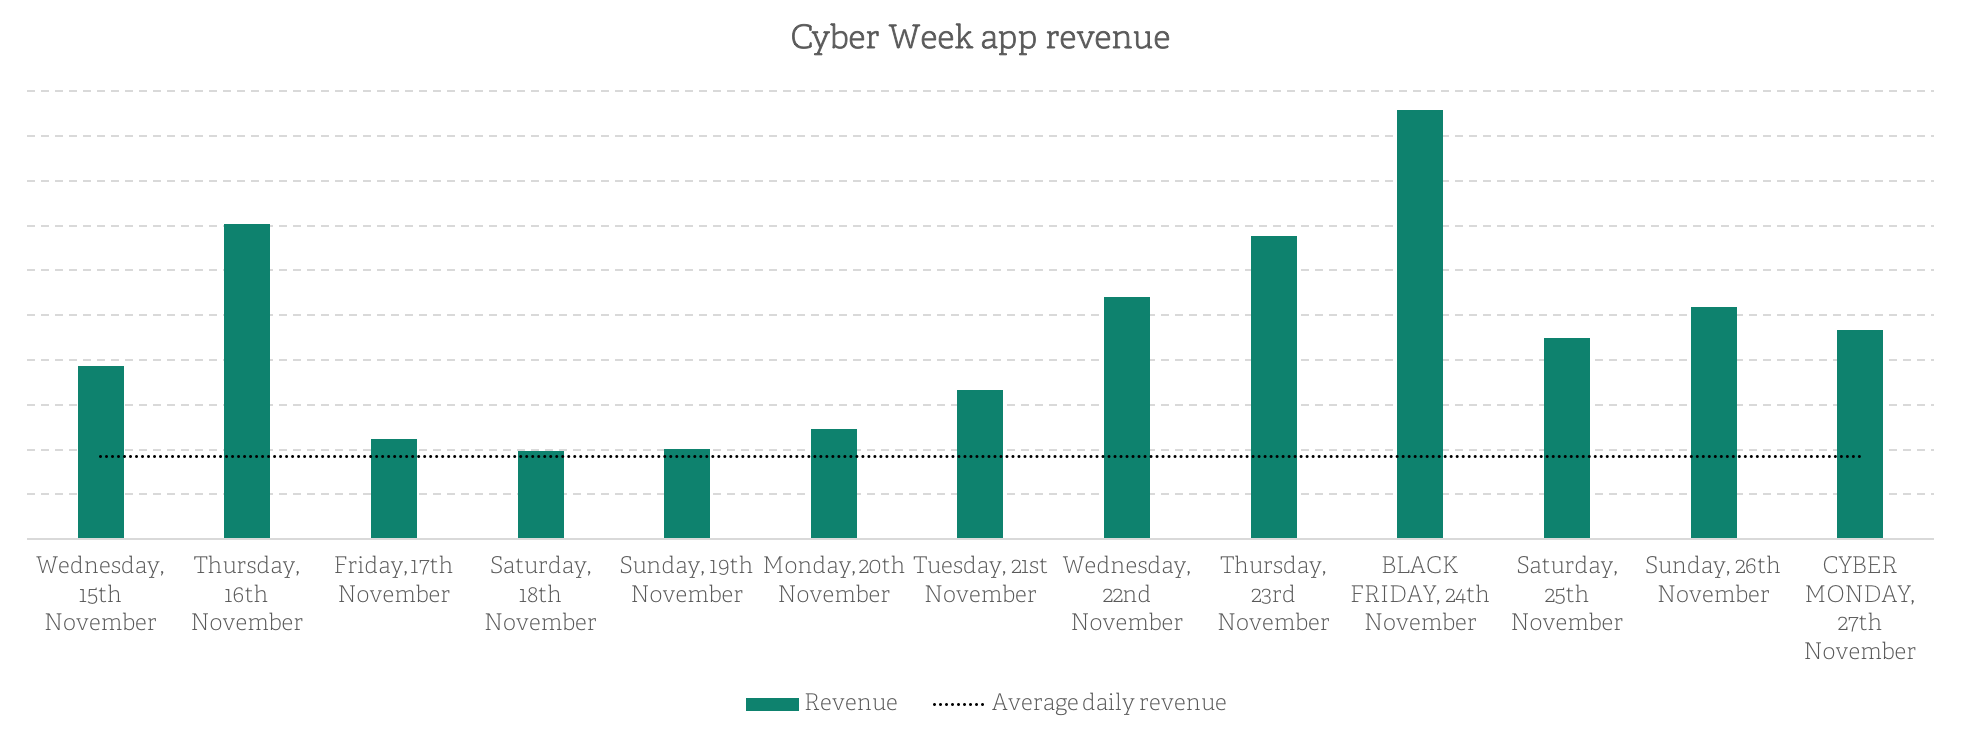 Cyber Week App Revenue Graph | Poq - the app commerce company